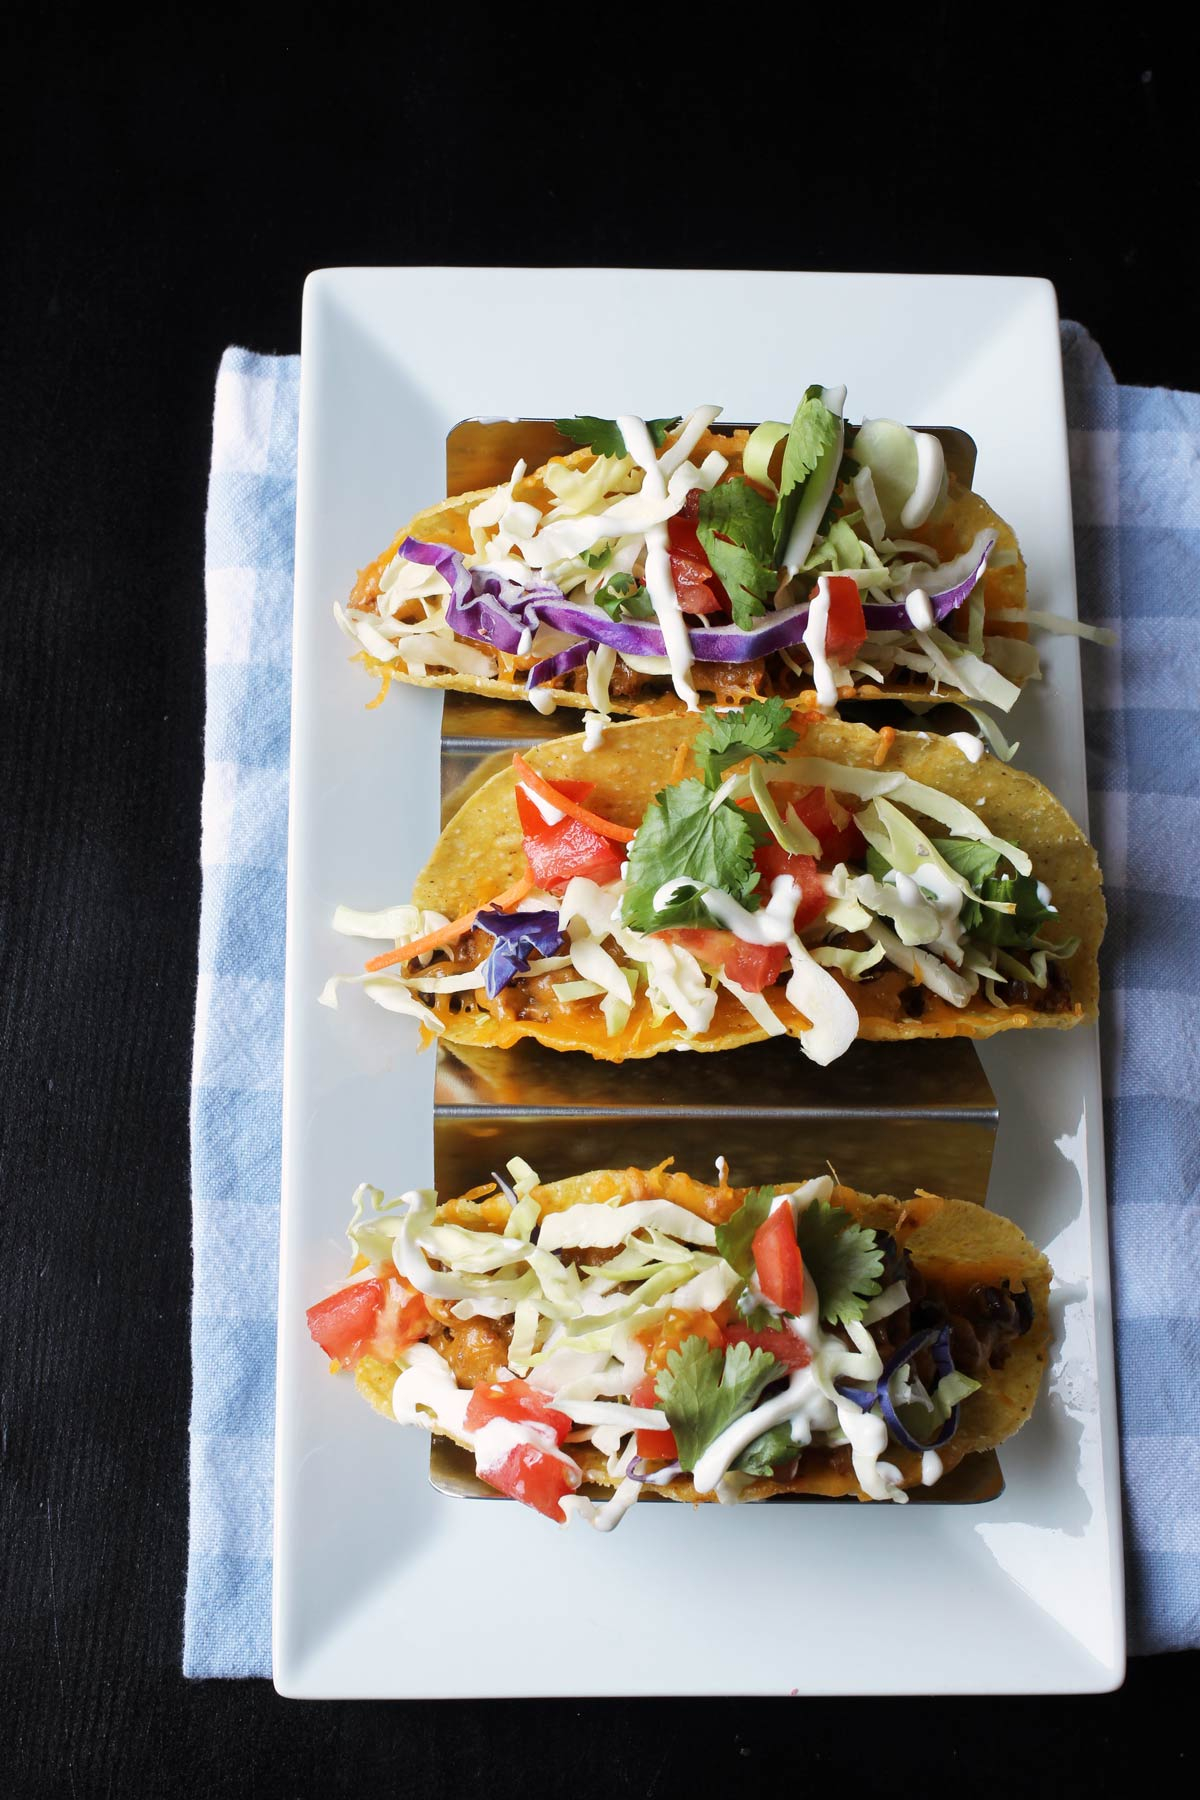 tray of three crunchy tacos on white platter with blue checked napkin.